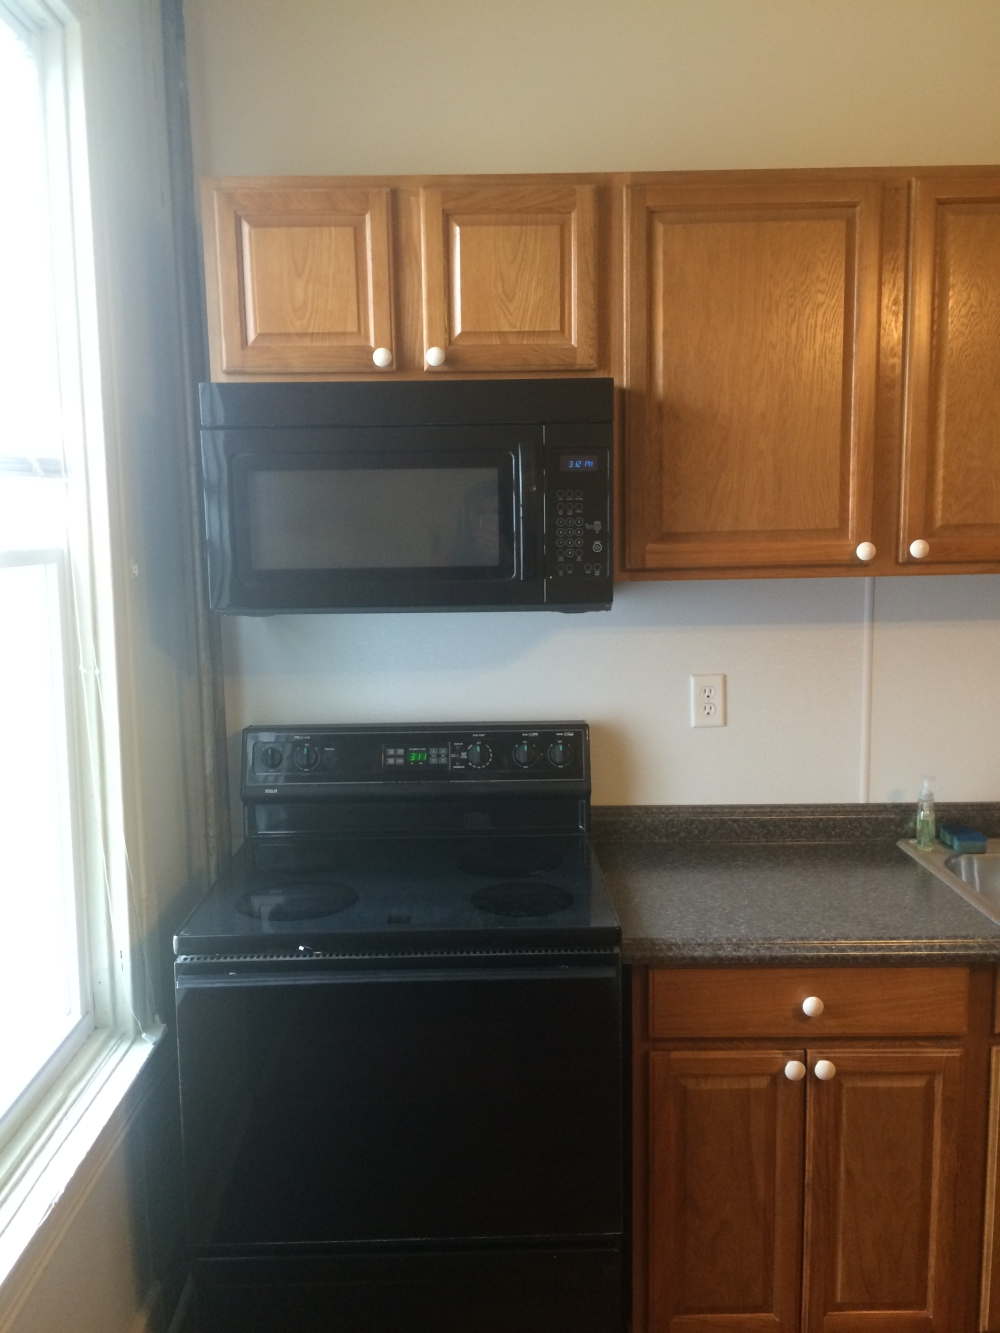 Rent an apartment at York College of PA for students